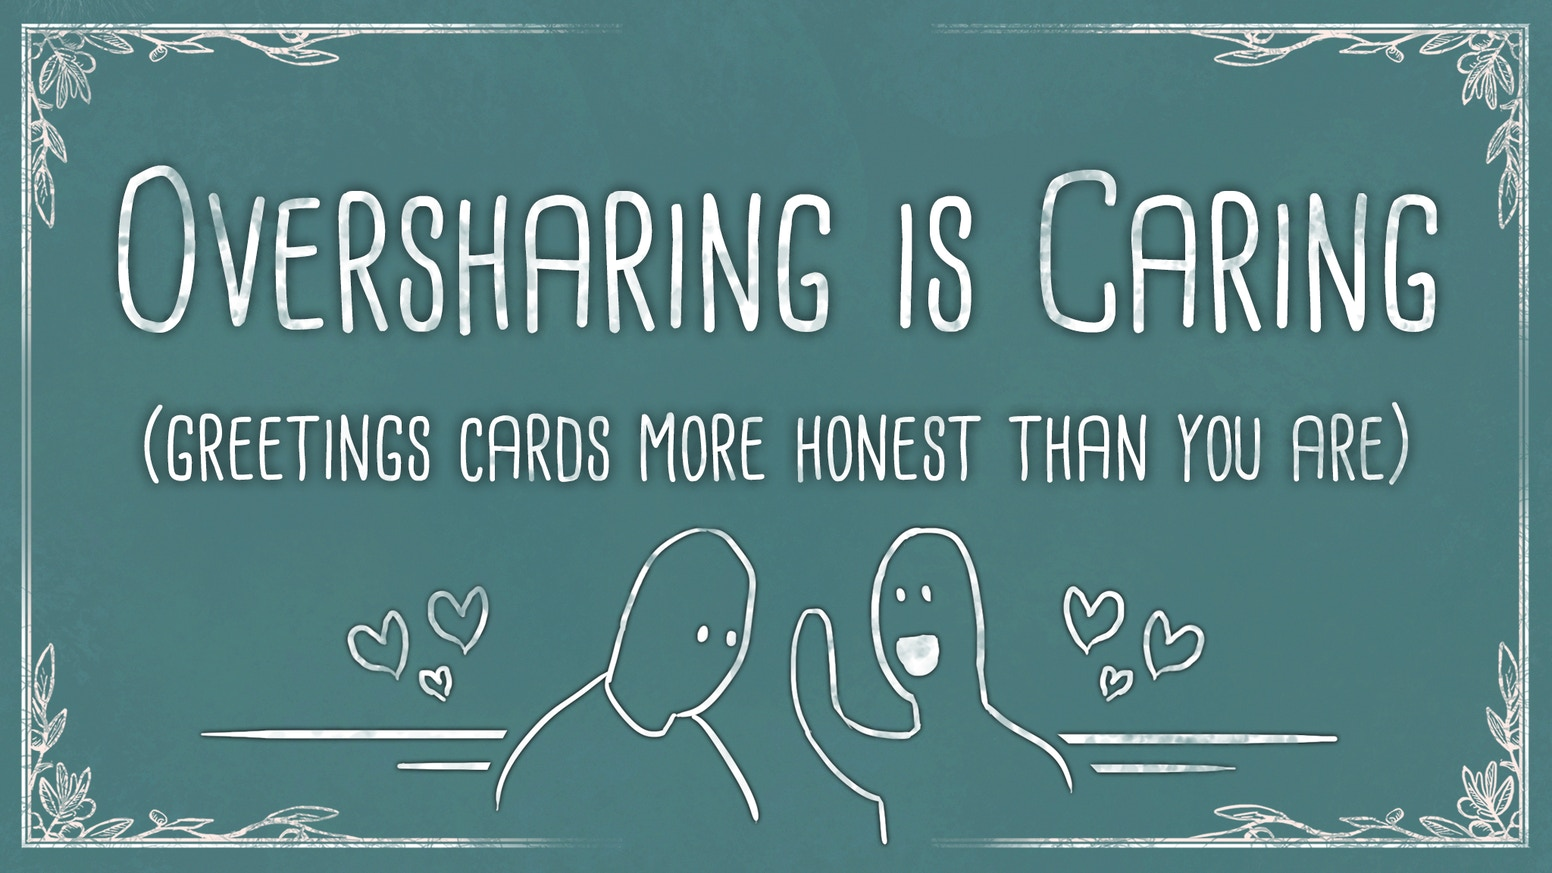 Oversharing is caring greetings cards more honest than you by greetings cards that speak your mind perfect for friends who are close enough to get kristyandbryce Choice Image